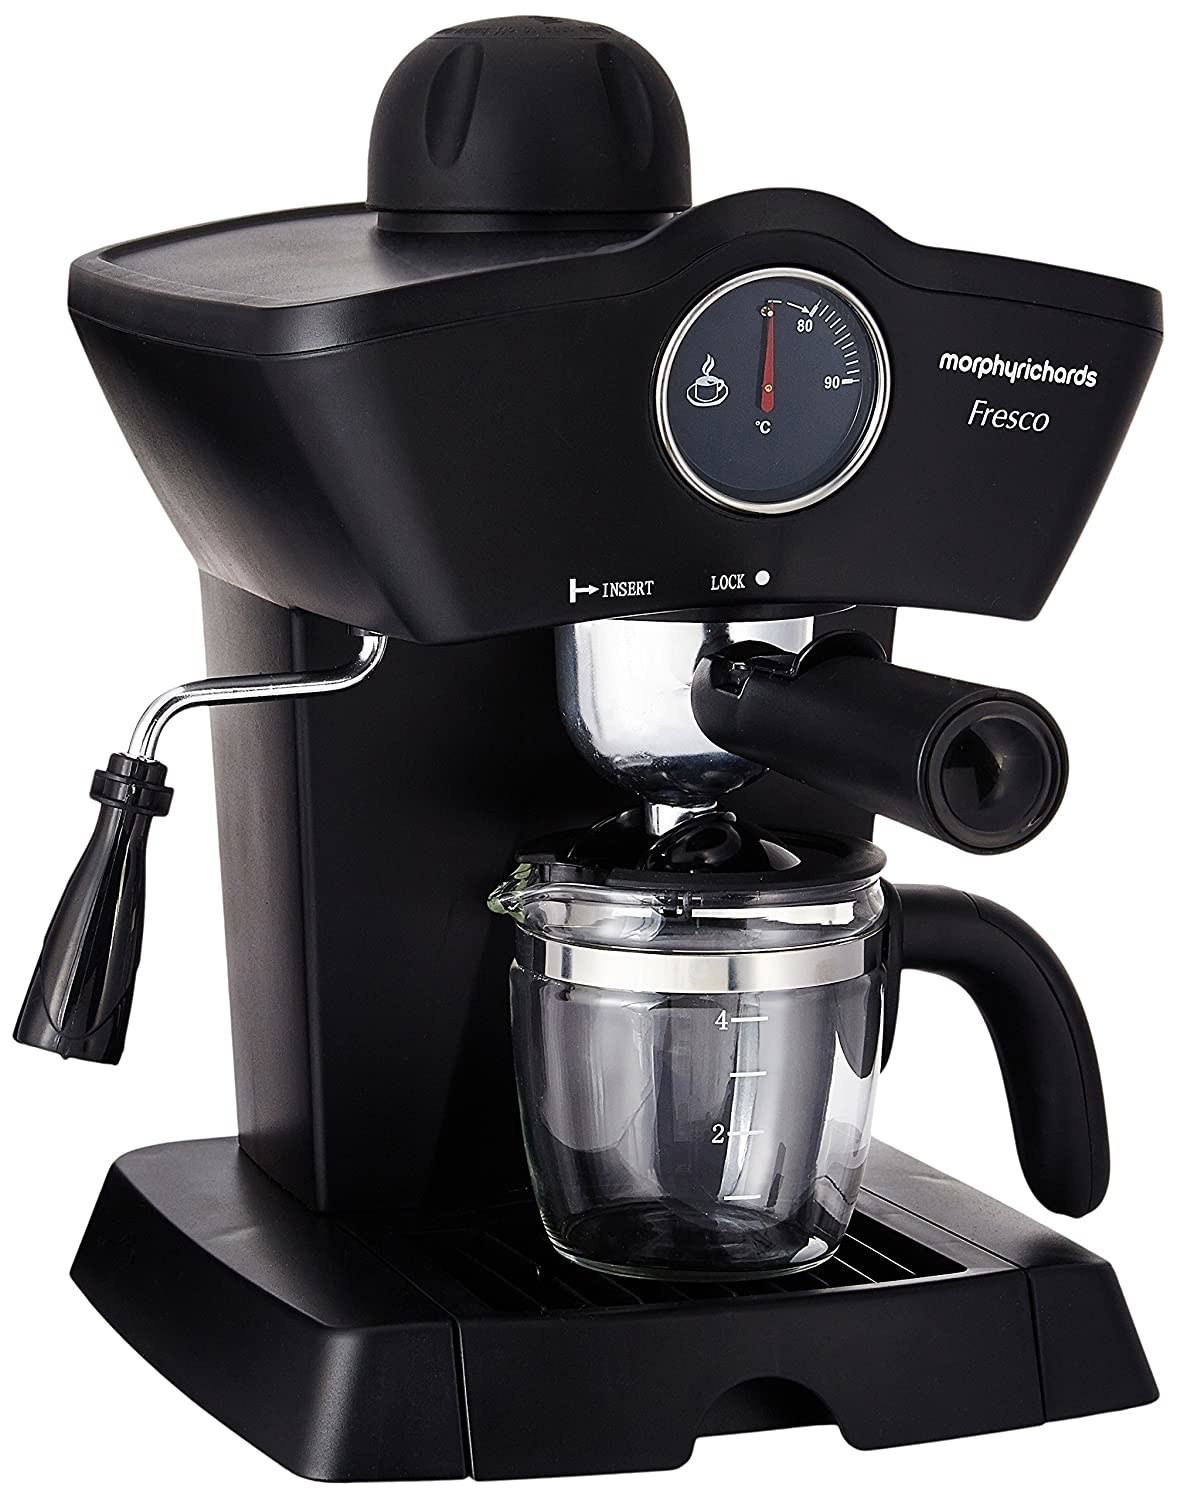 A Morphy Richards coffee maker